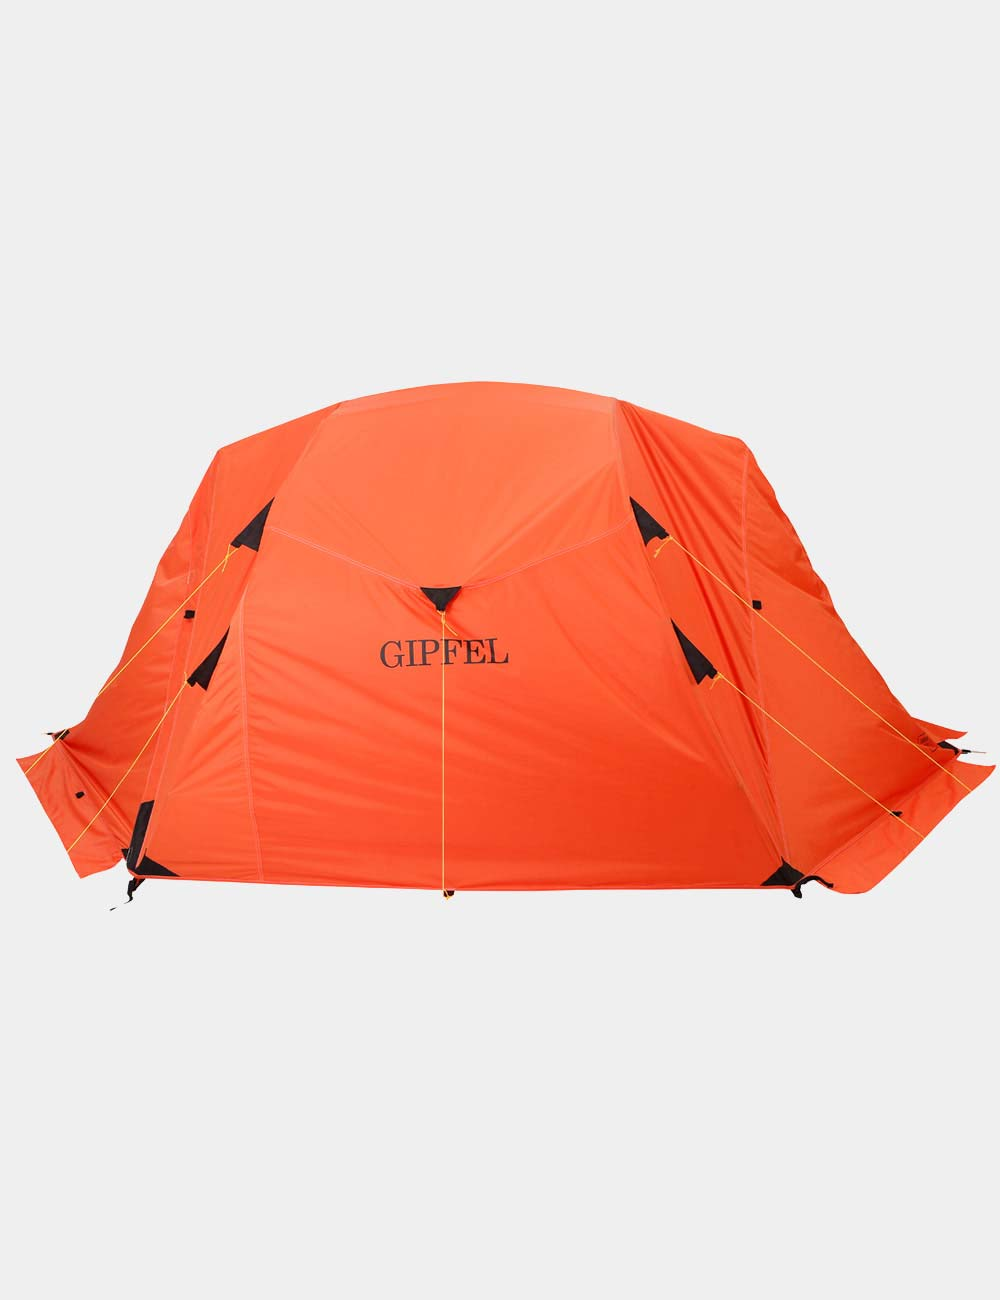 282b07258c71 Buy Gipfel UFO 4 (ULTRALIGHT 4 PERSON TENT) tent in India